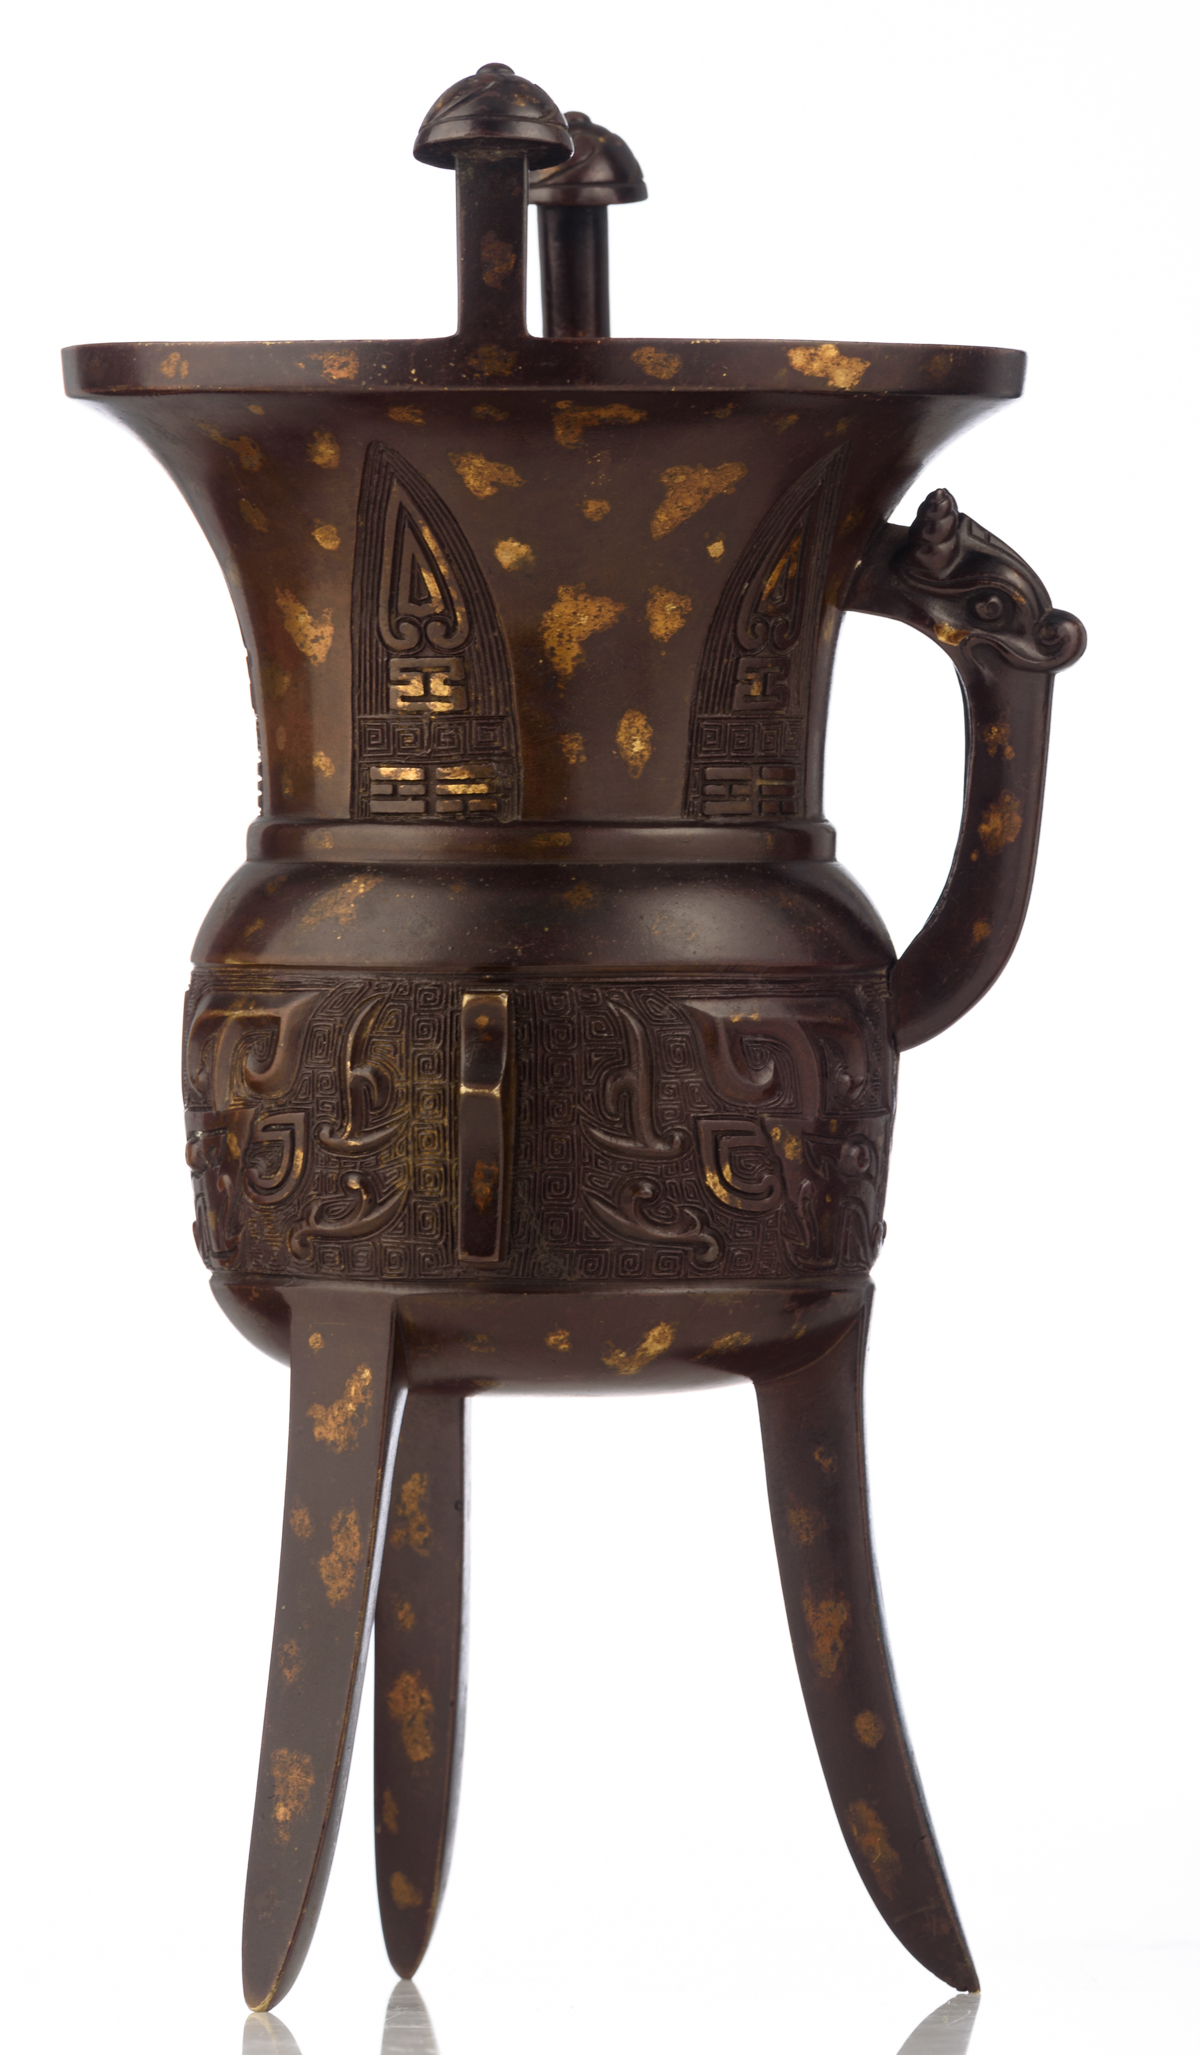 Lot 6 - An archaic bronze gold-splash decorated Jia tripod vessel, relief decorated with Taotie masks and